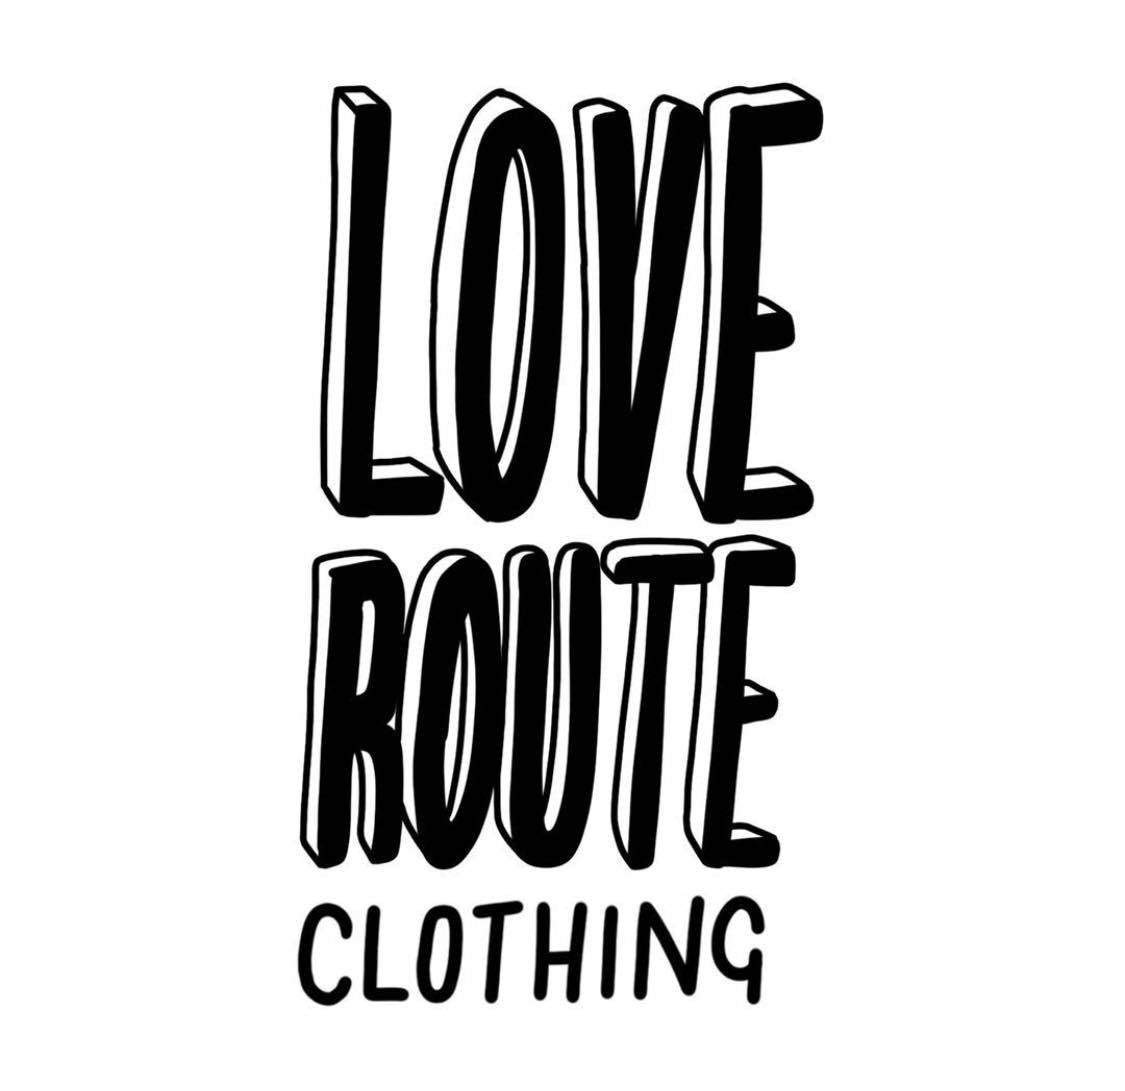 LOVE ROUTE CLOTHING